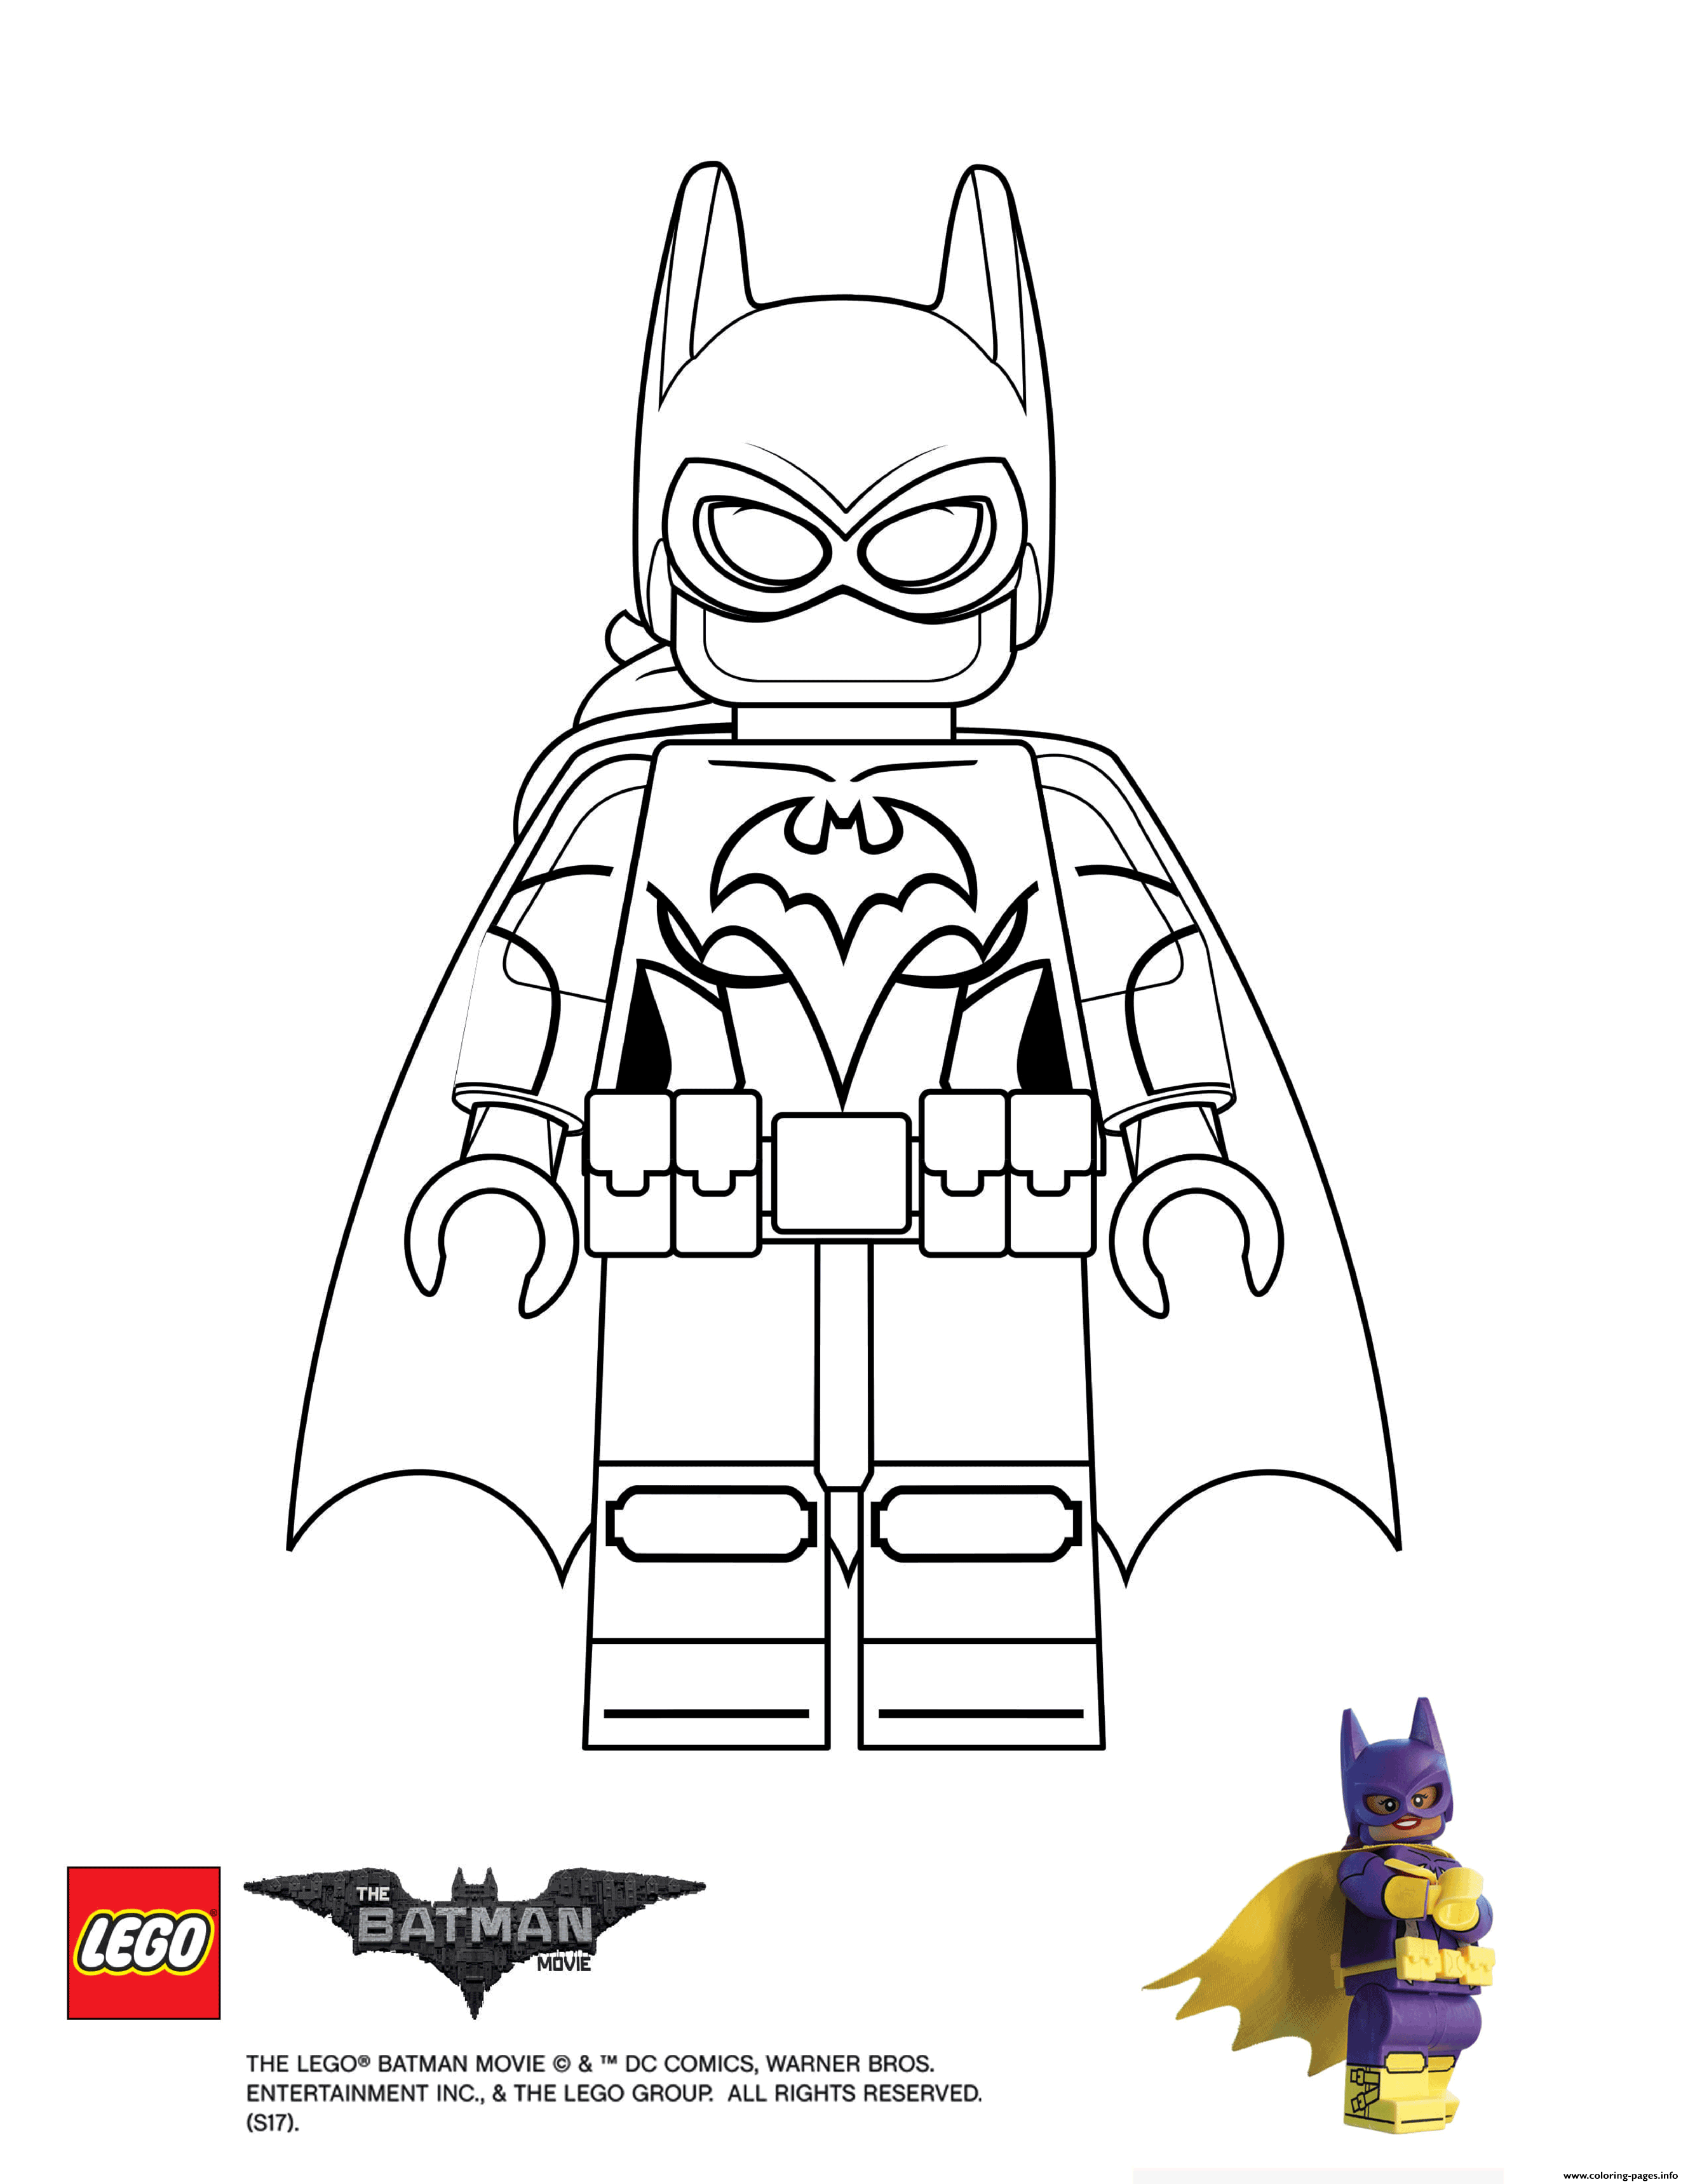 Batgirl lego batman movie coloring pages printable for Batman lego movie coloring pages